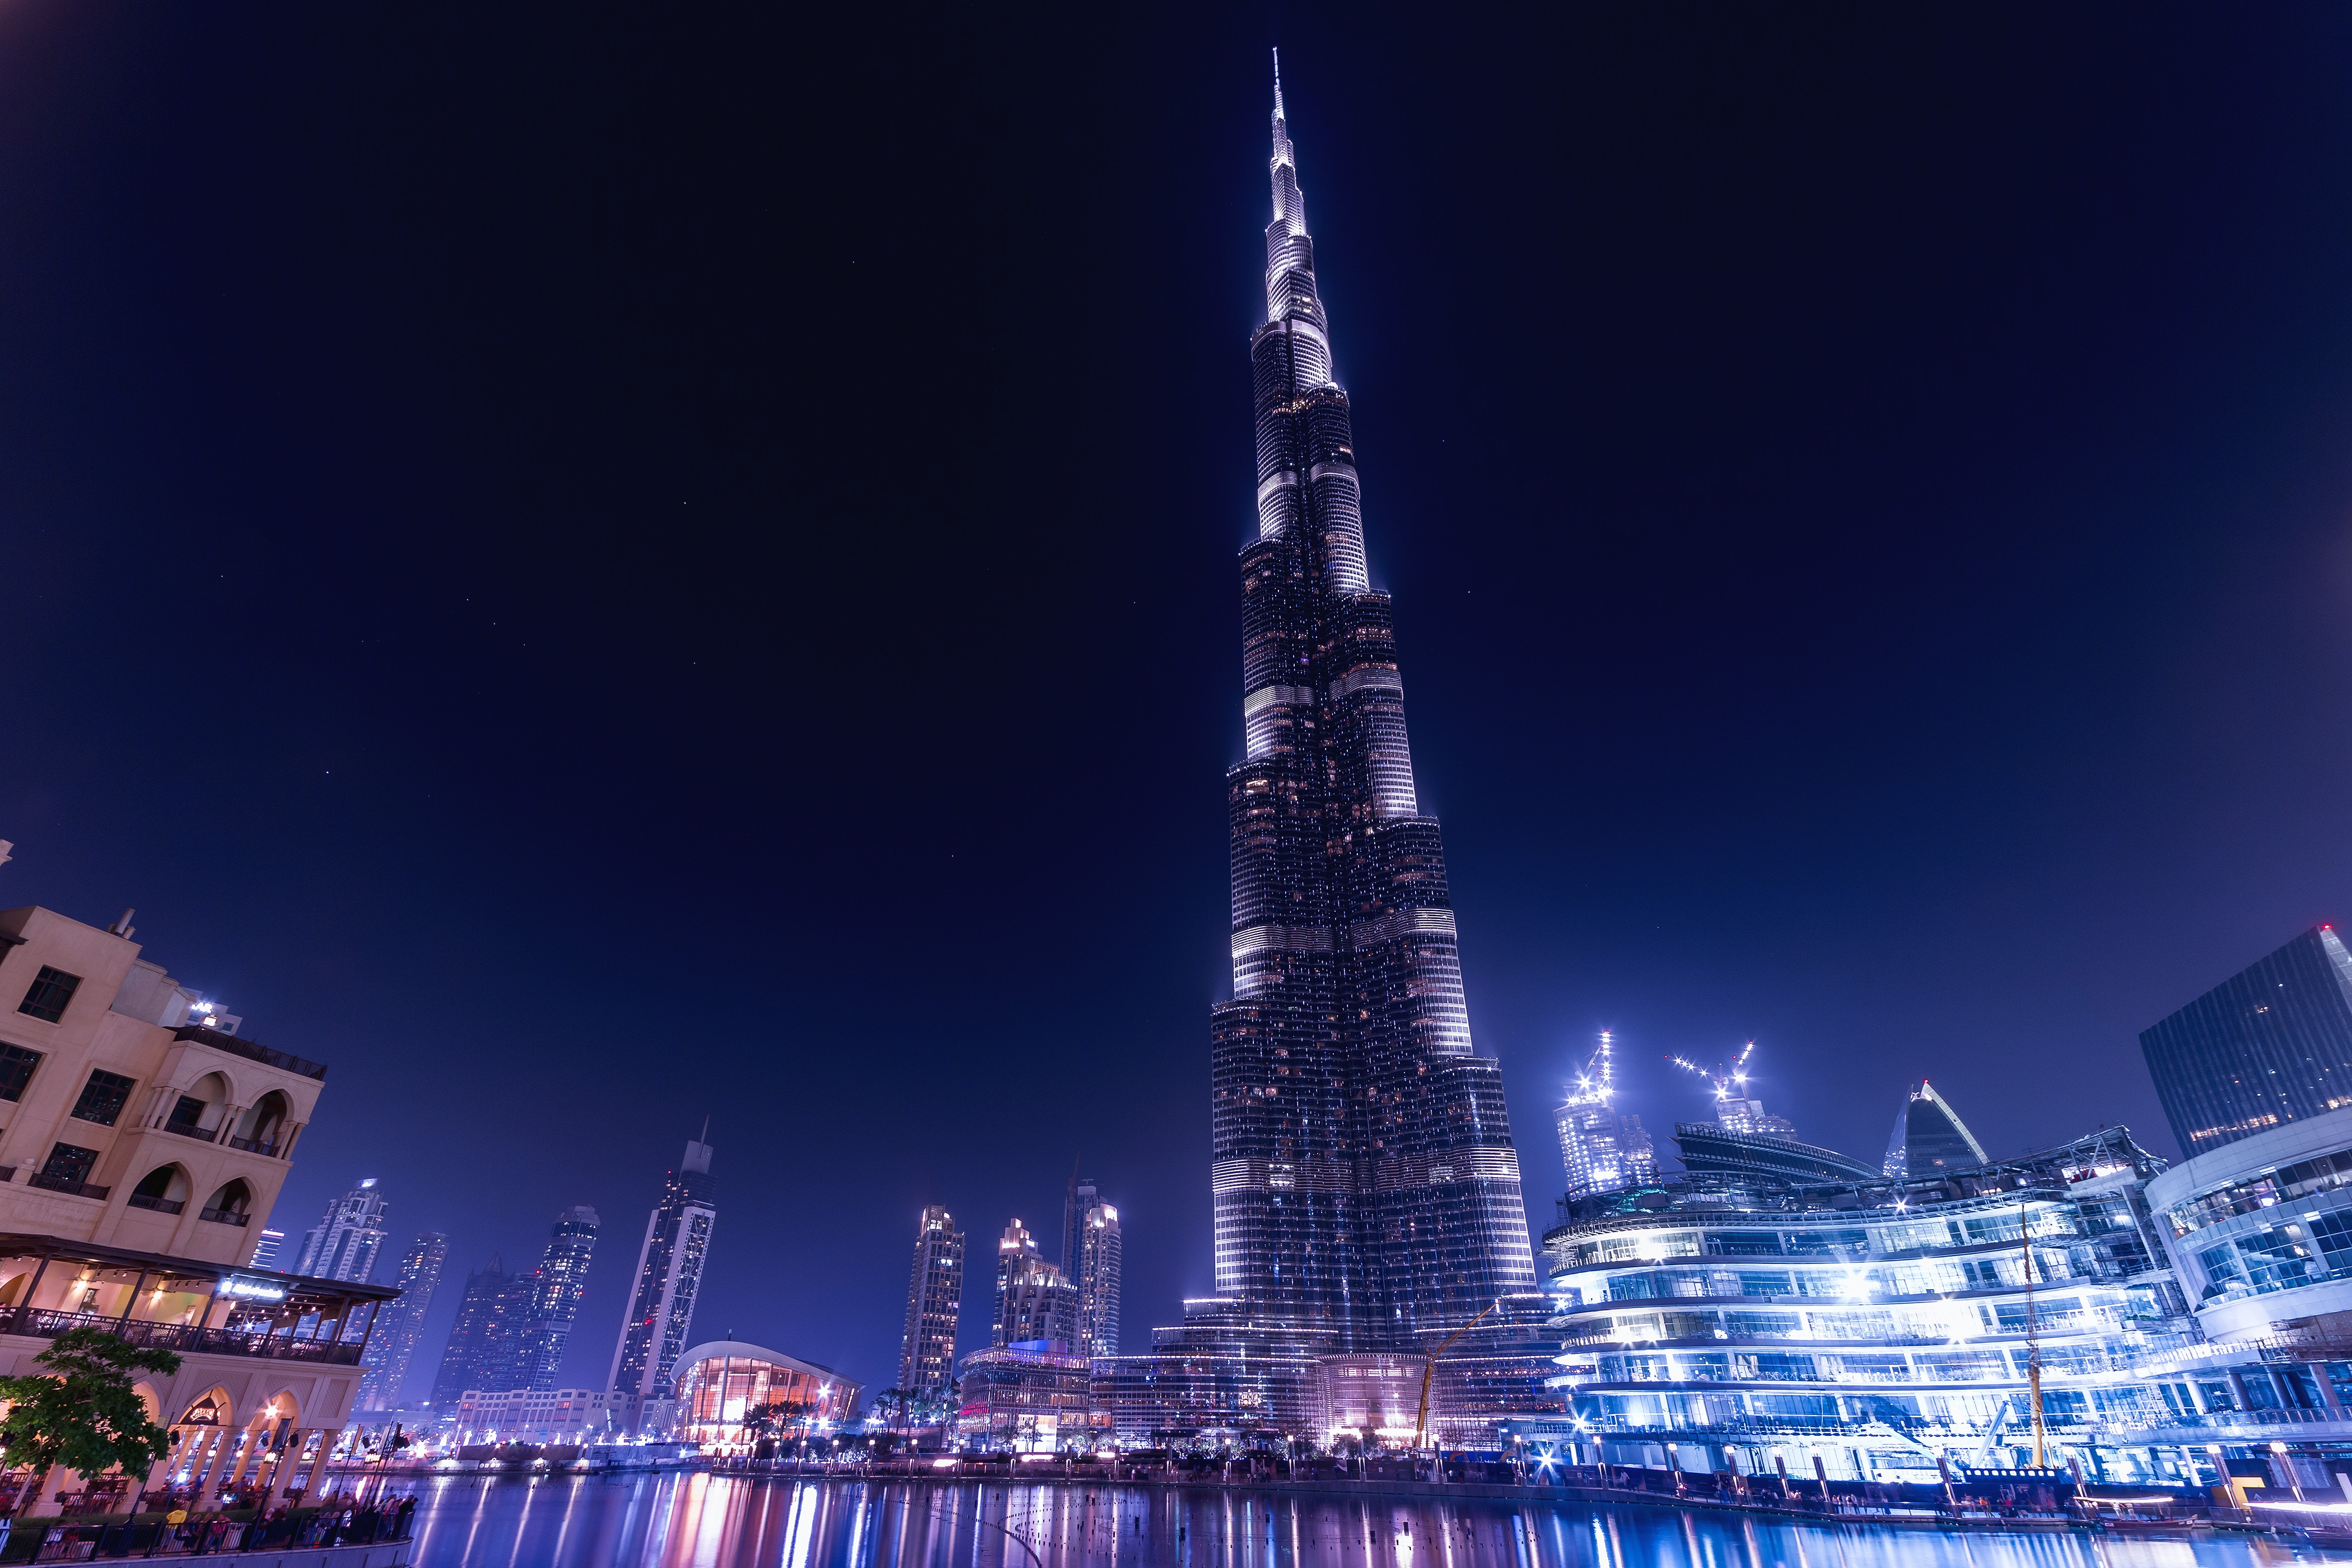 1920x1080 burj khalifa dubai night laptop full hd 1080p hd 4k